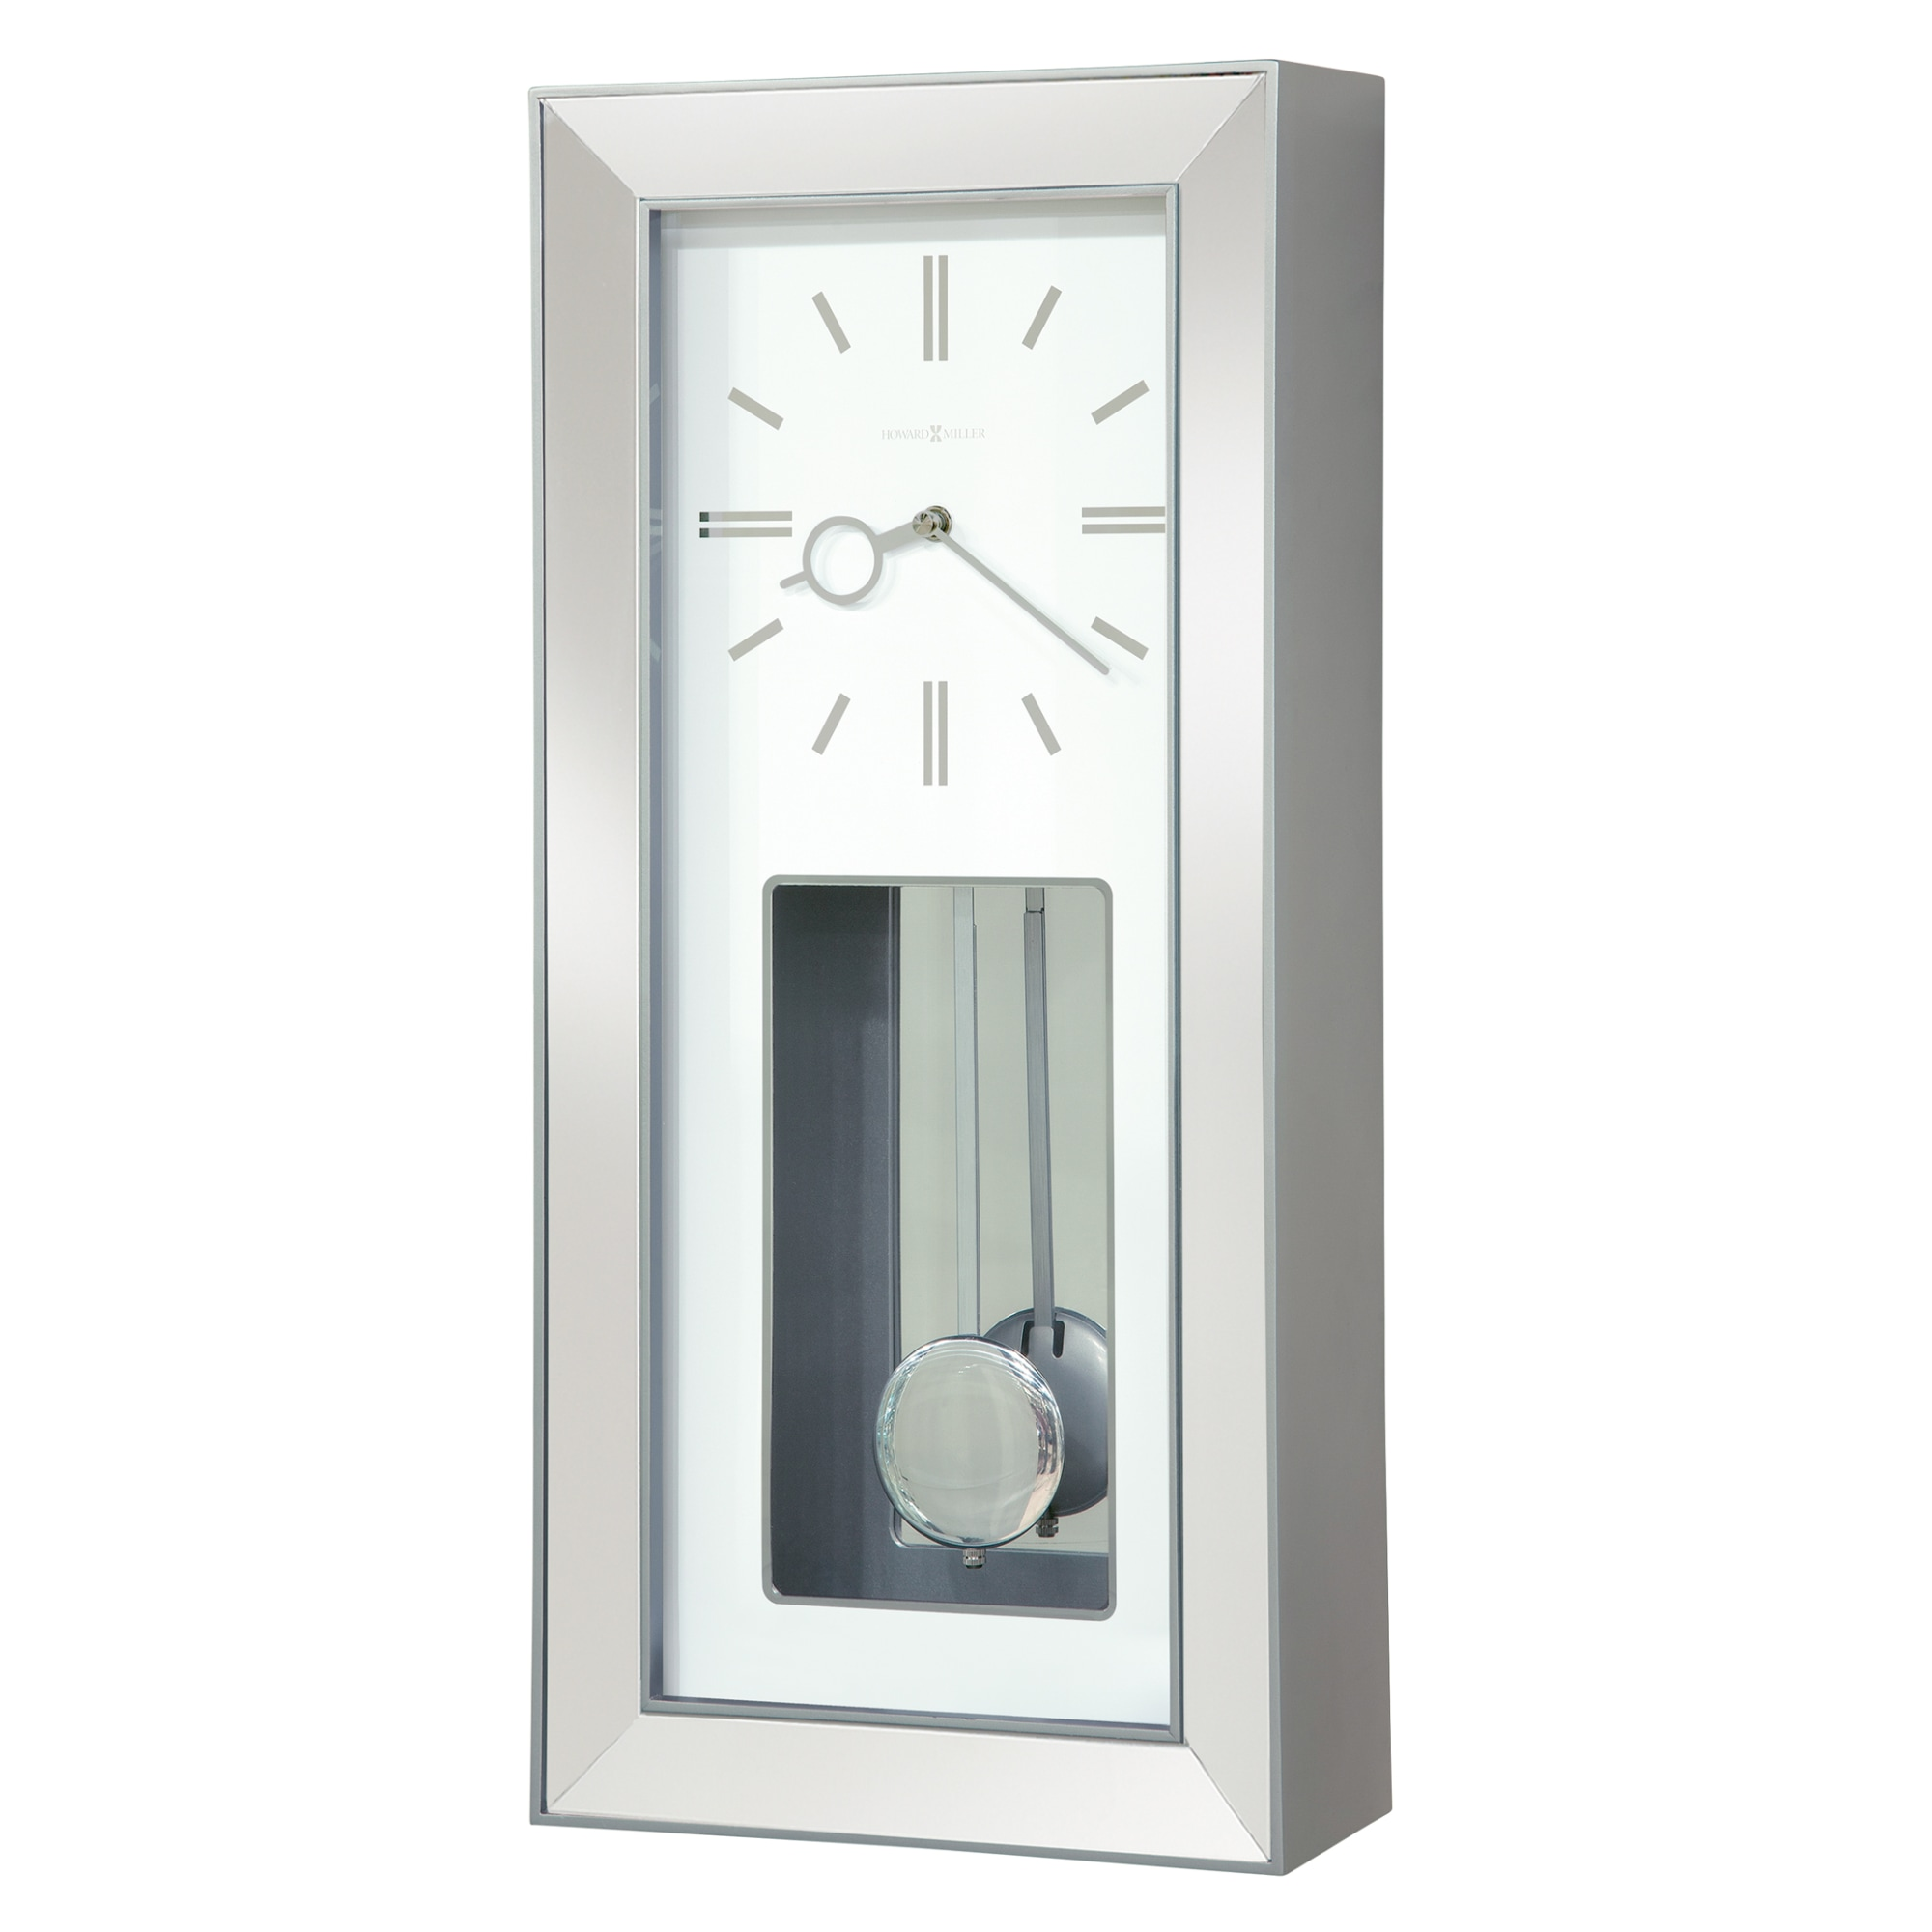 Image for Howard Miller Chaz Contemporary Wall Clock 625614 from Howard Miller Official Website